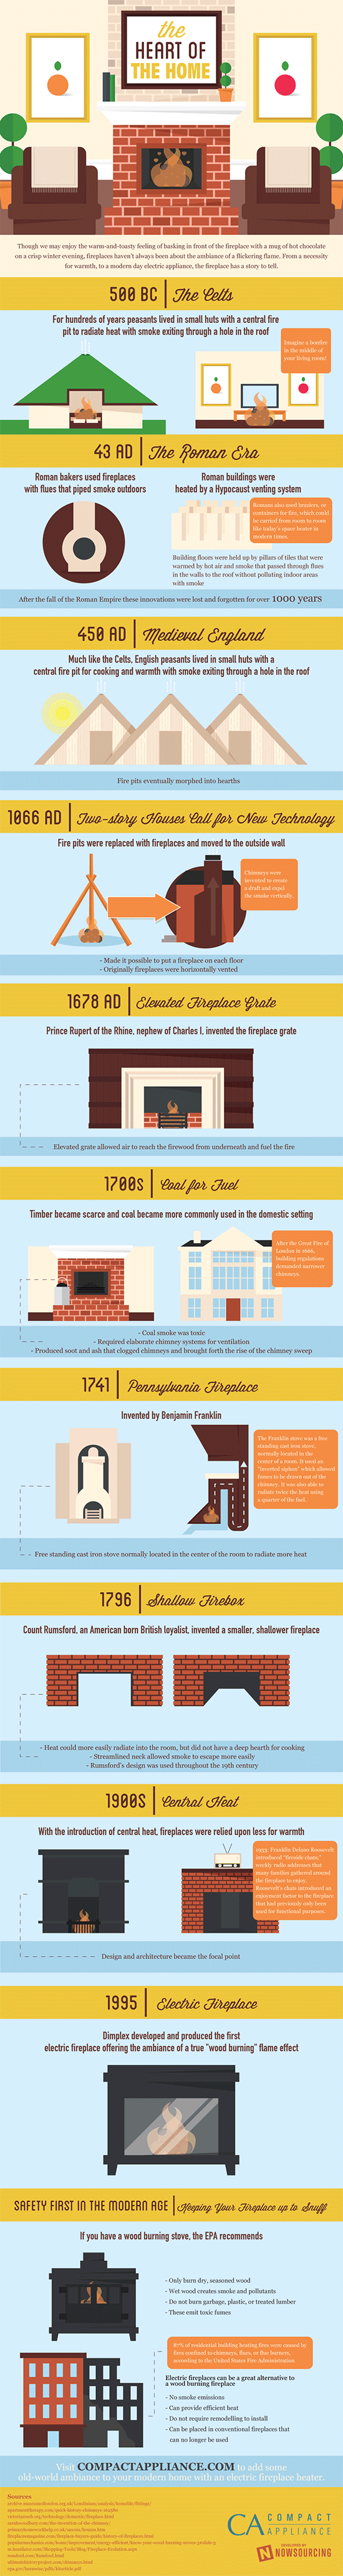 The Evolution & History of Fireplaces